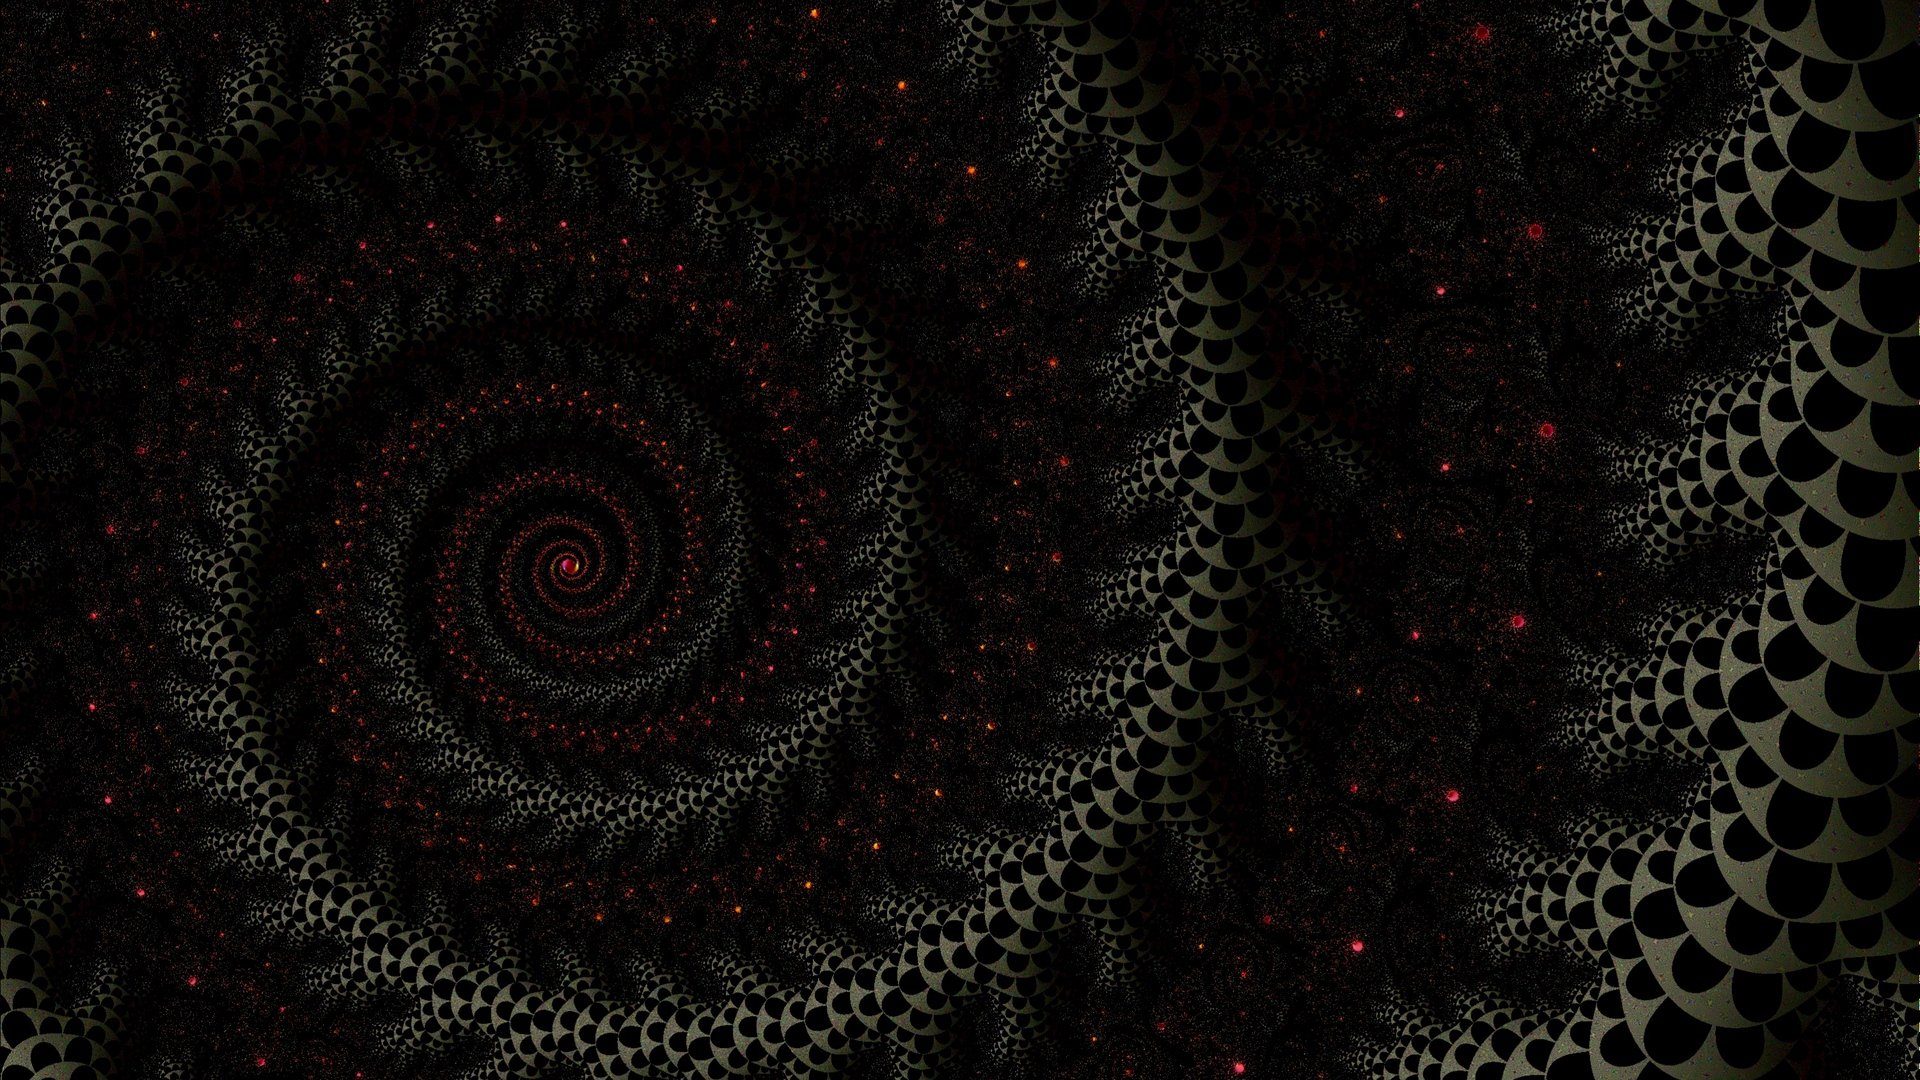 Download wallpaper 1920x1080 spiral fractal dark twisted full 1920x1080